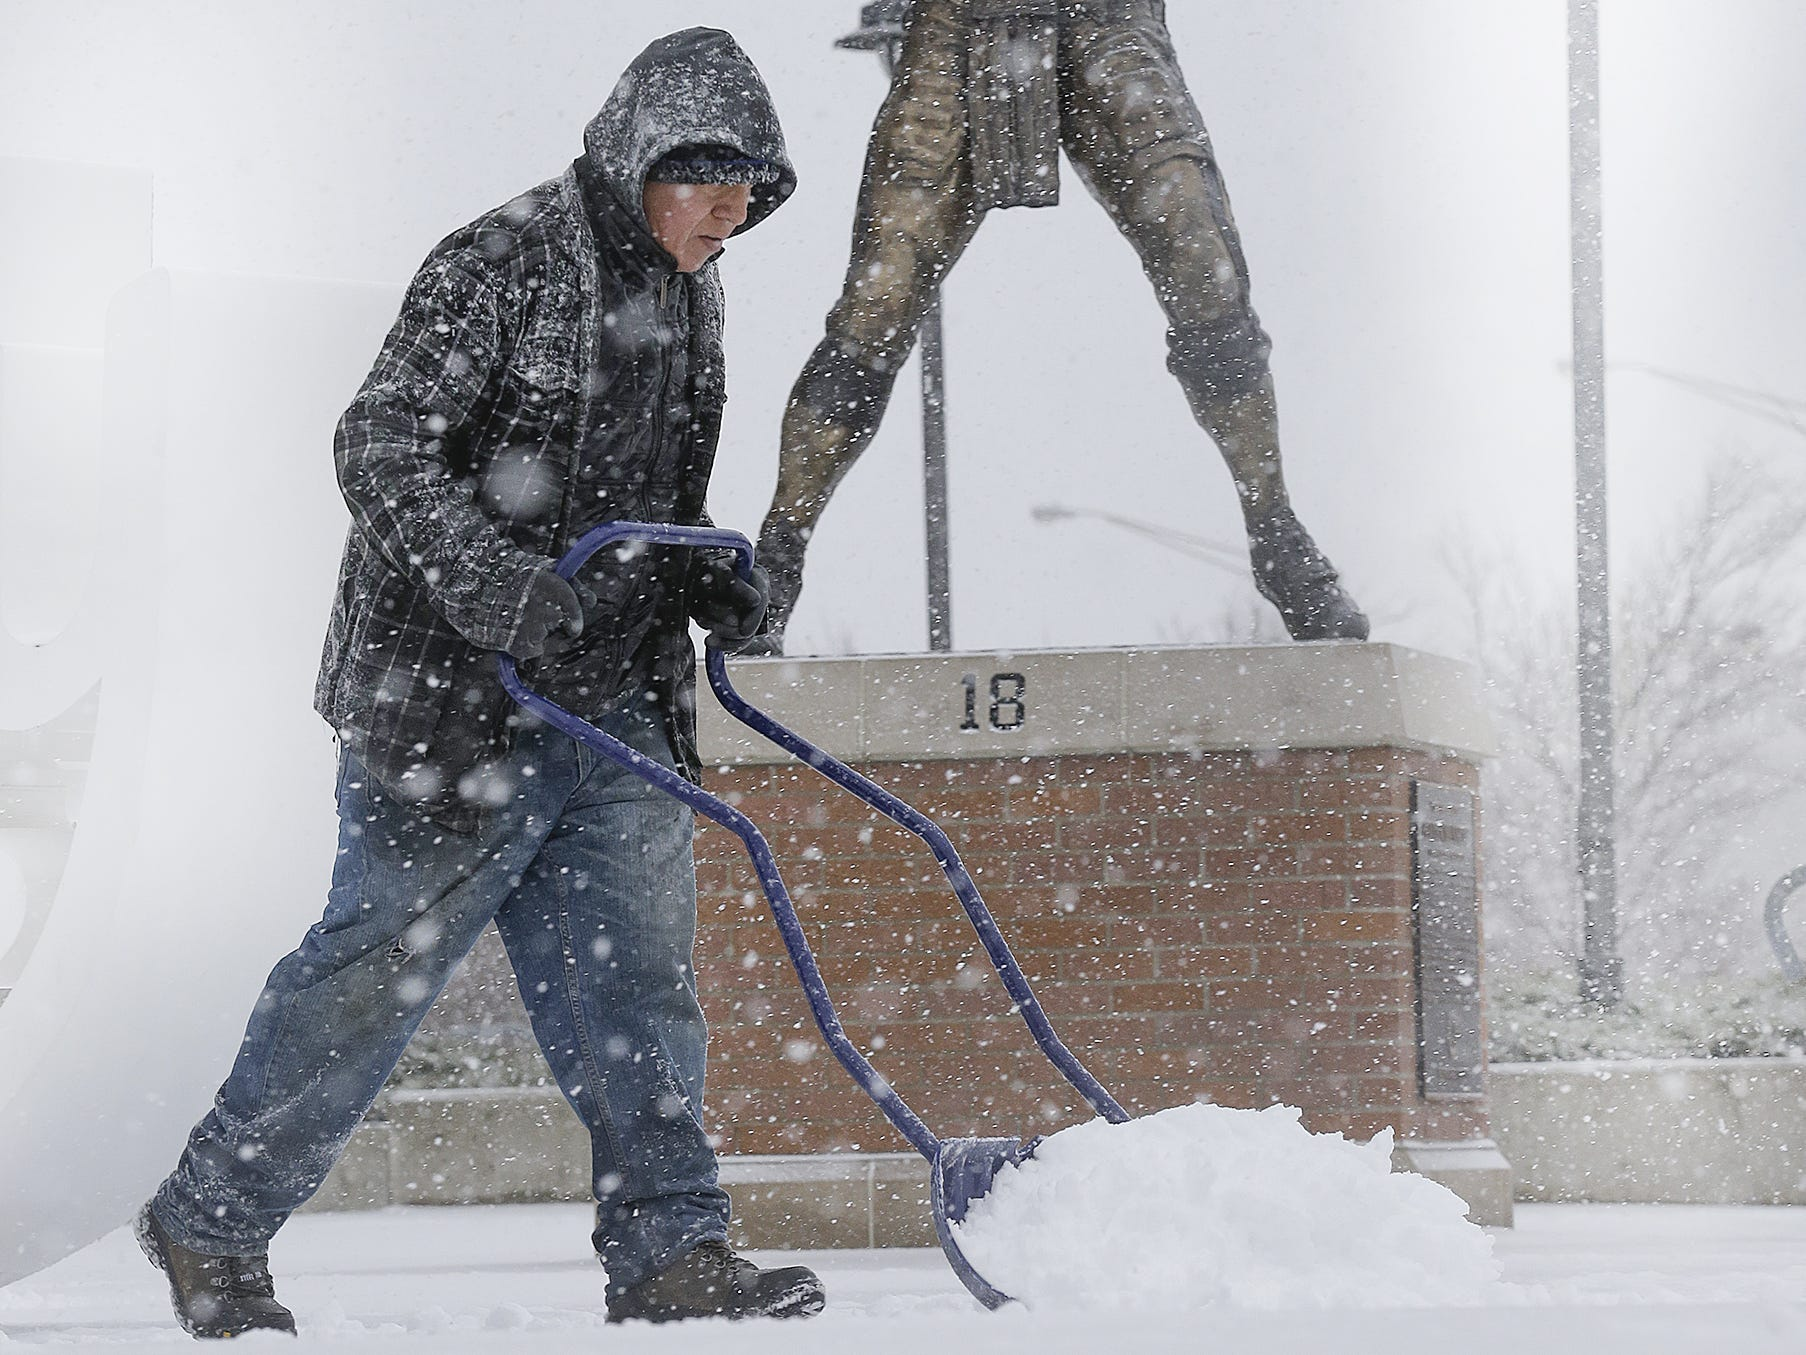 Victor Garcia pushes the snow from the sidewalks and away from the statue of Peyton Manning as he keeps the snow clear from Lucas Oil Stadium. Severe winter weather hit central Indiana with rain turning to ice and the snow Friday, Jan 12, 2018.